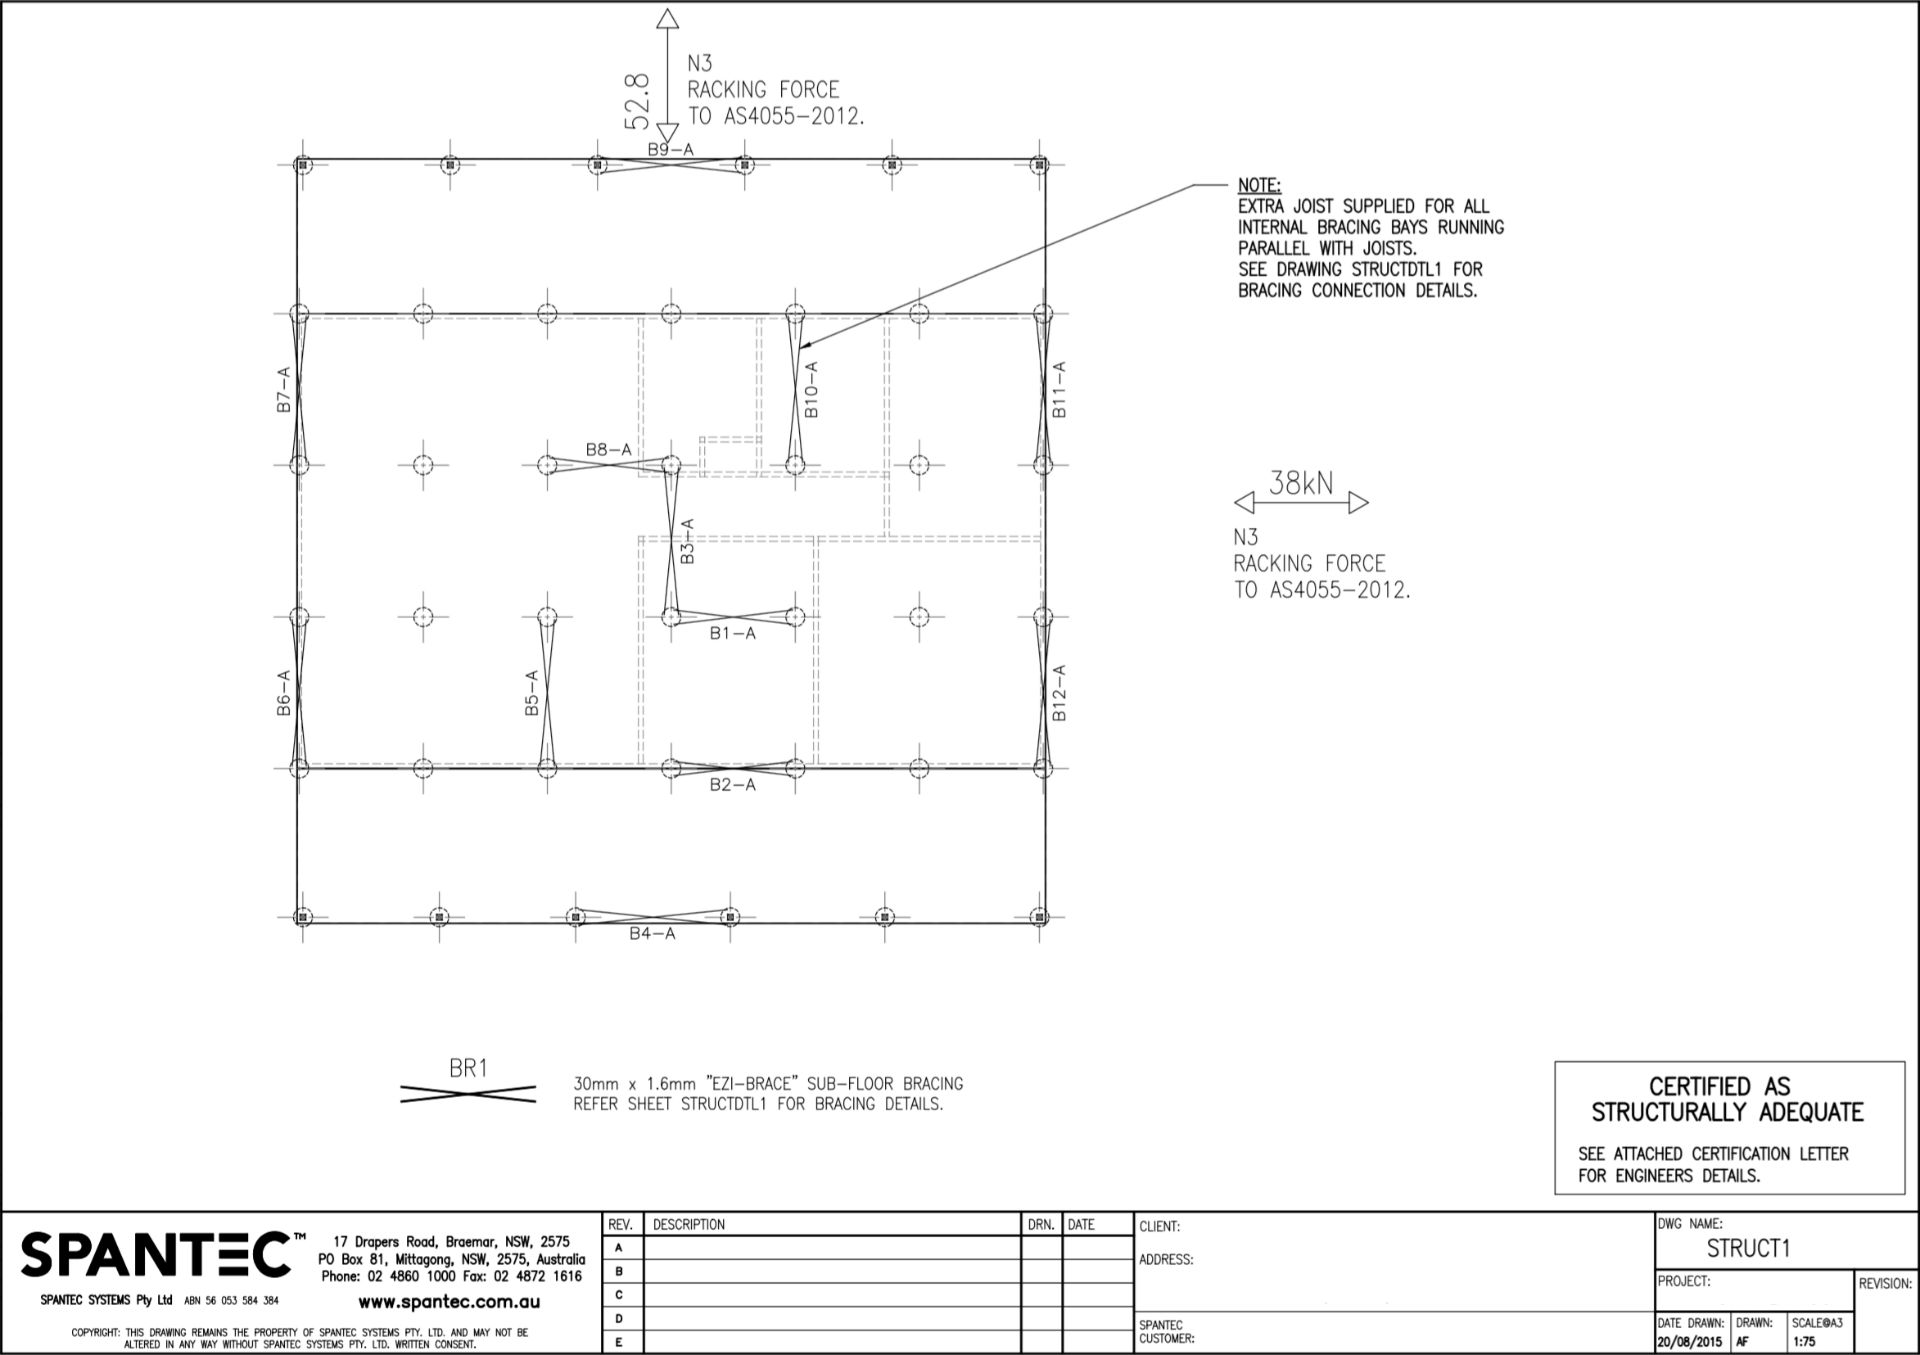 Example of a Bracing Detail Plan drawing produced using CAD drafting software